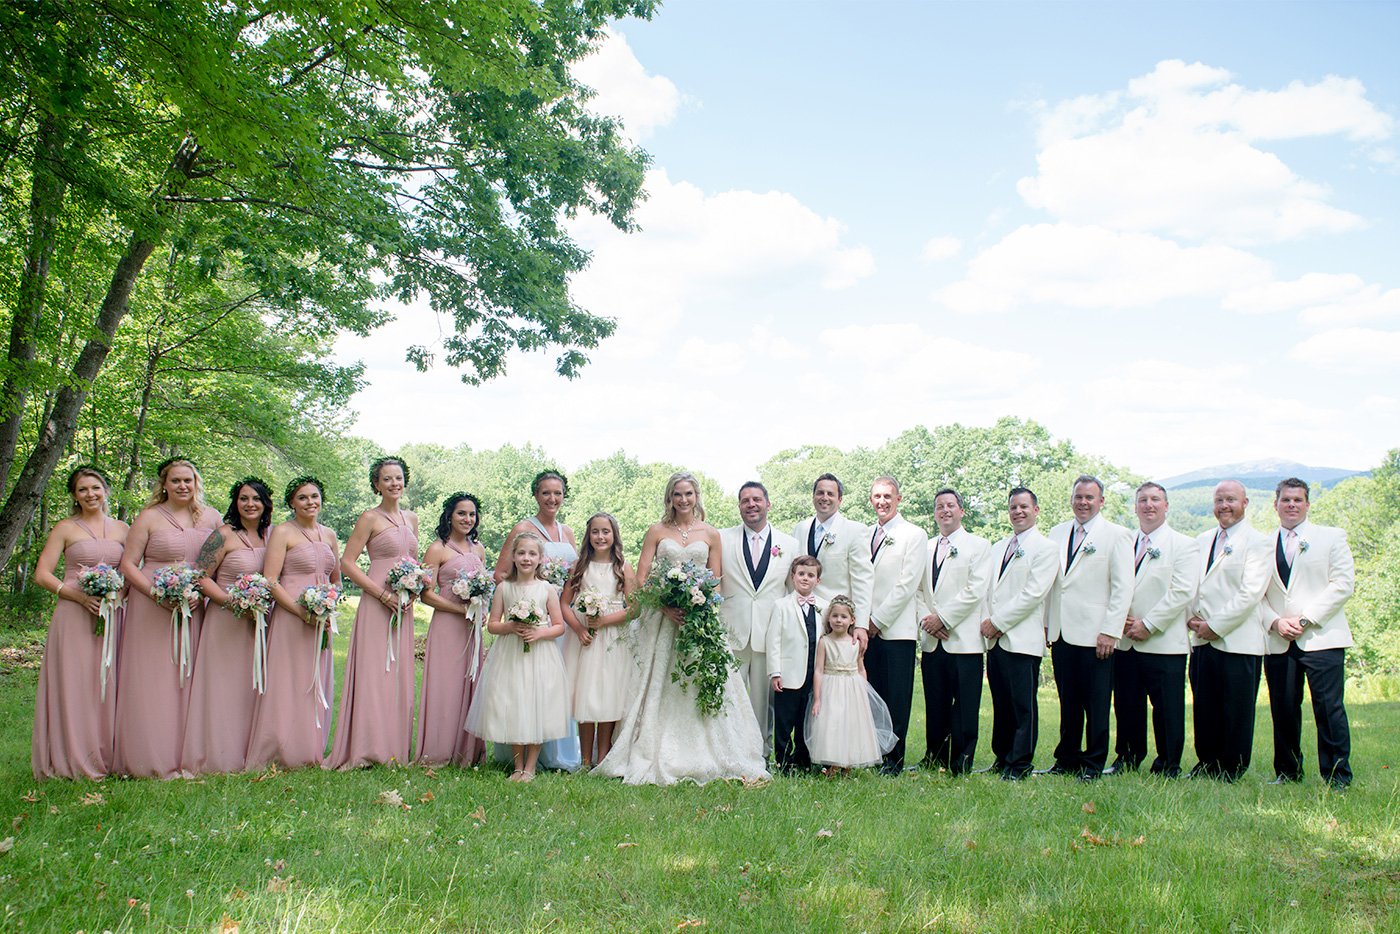 bridal party wedding photos nh